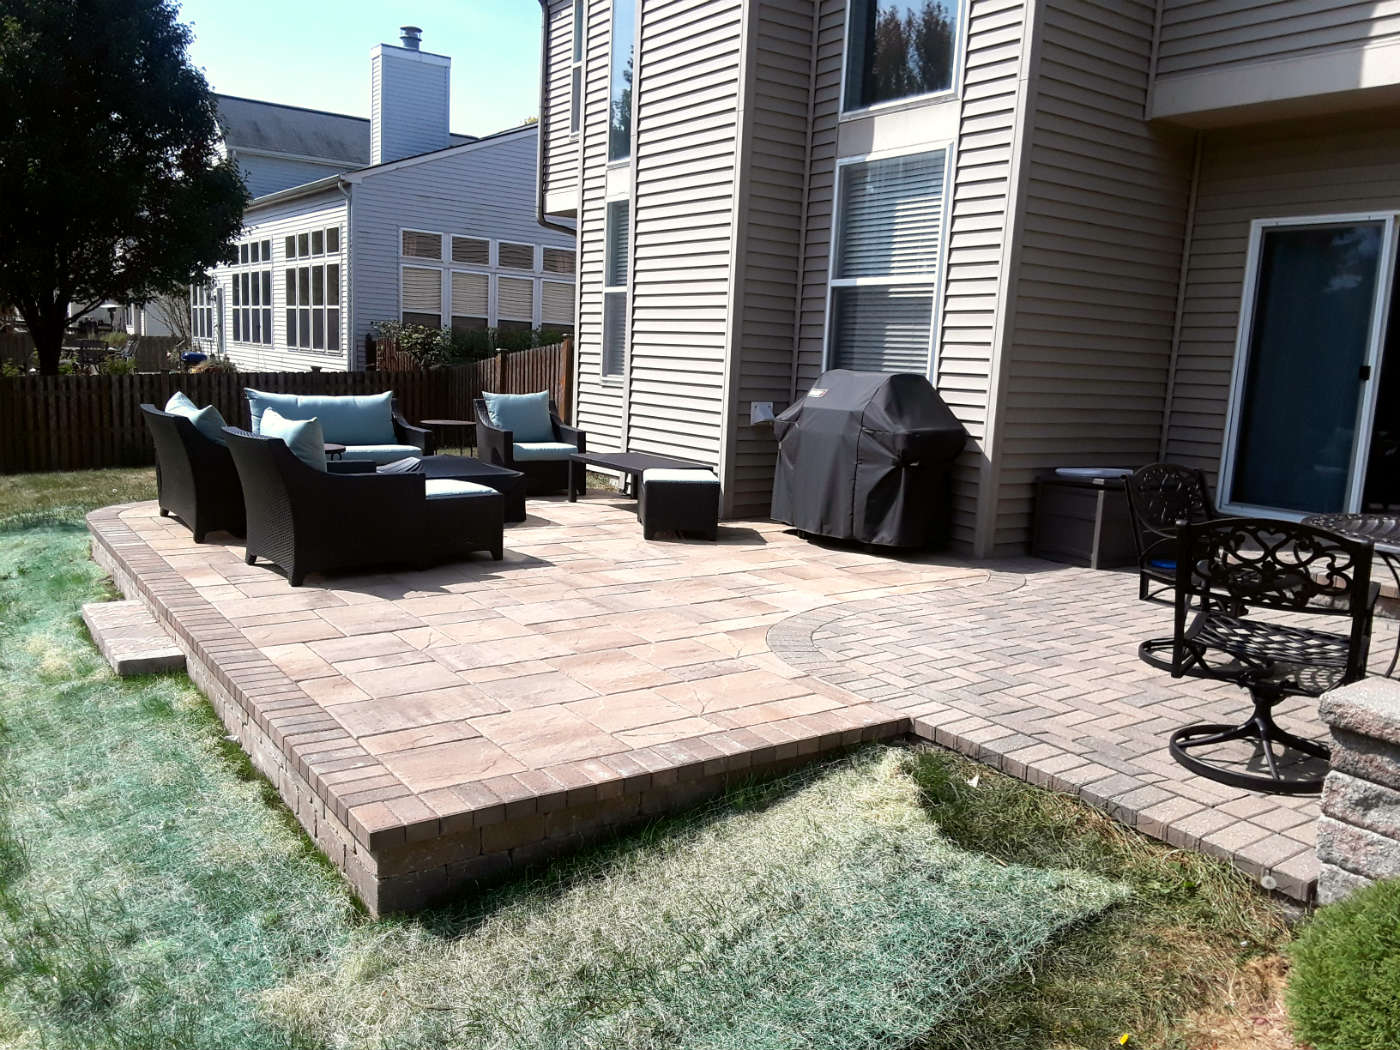 Belgard Paver Patio Design by Plainfield, IL Patio Designer, Archadeck of Chicagoland Thumbnail